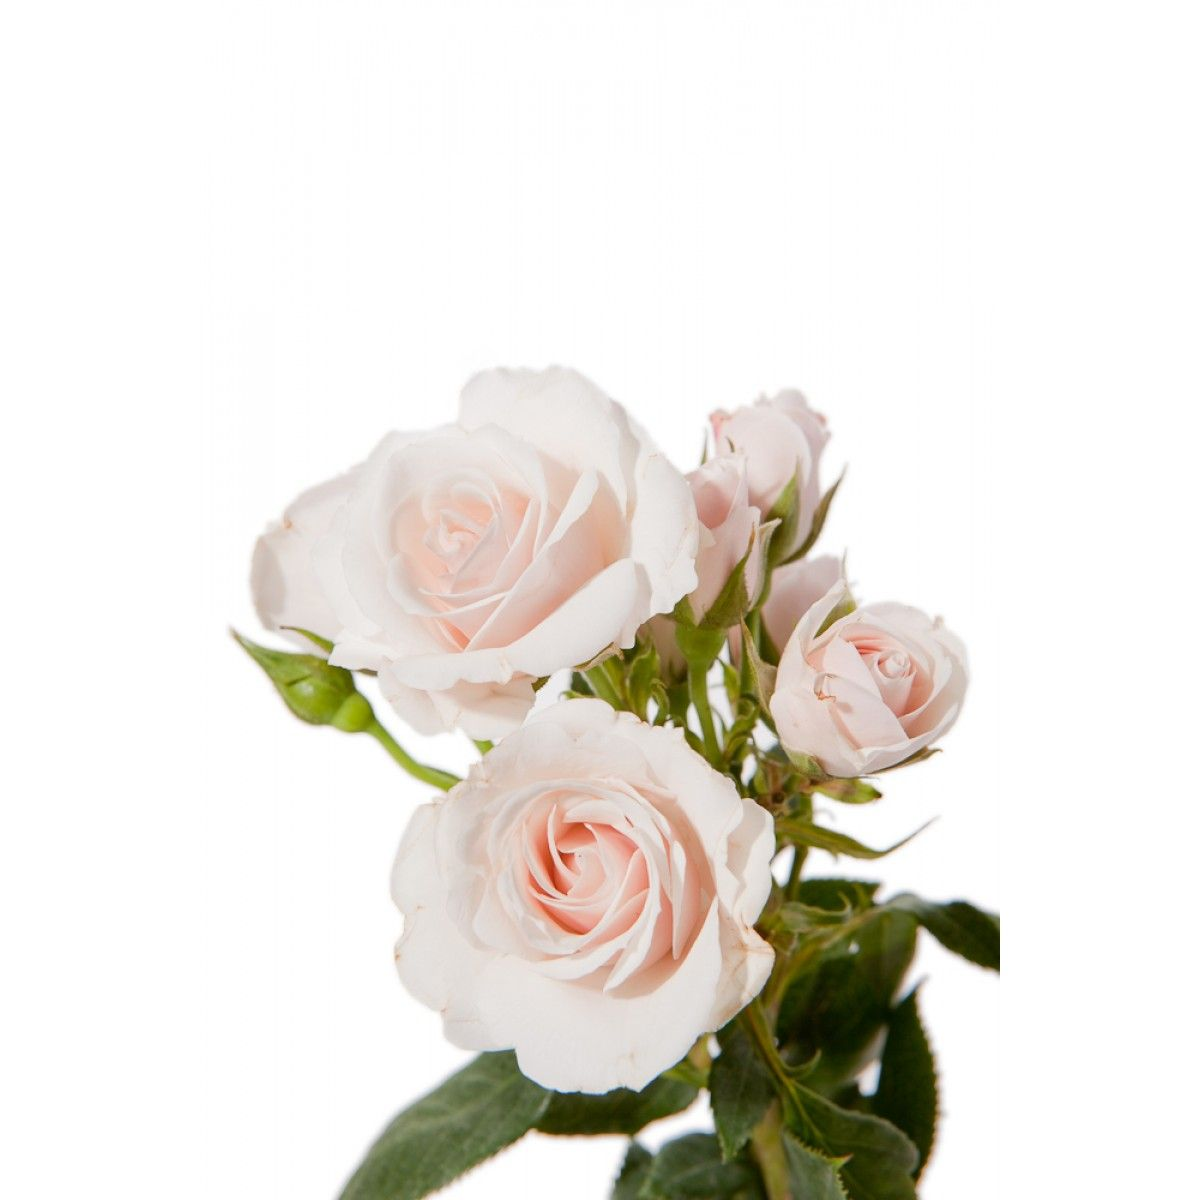 Home bulk roses peach roses - White Majolica Spray Roses